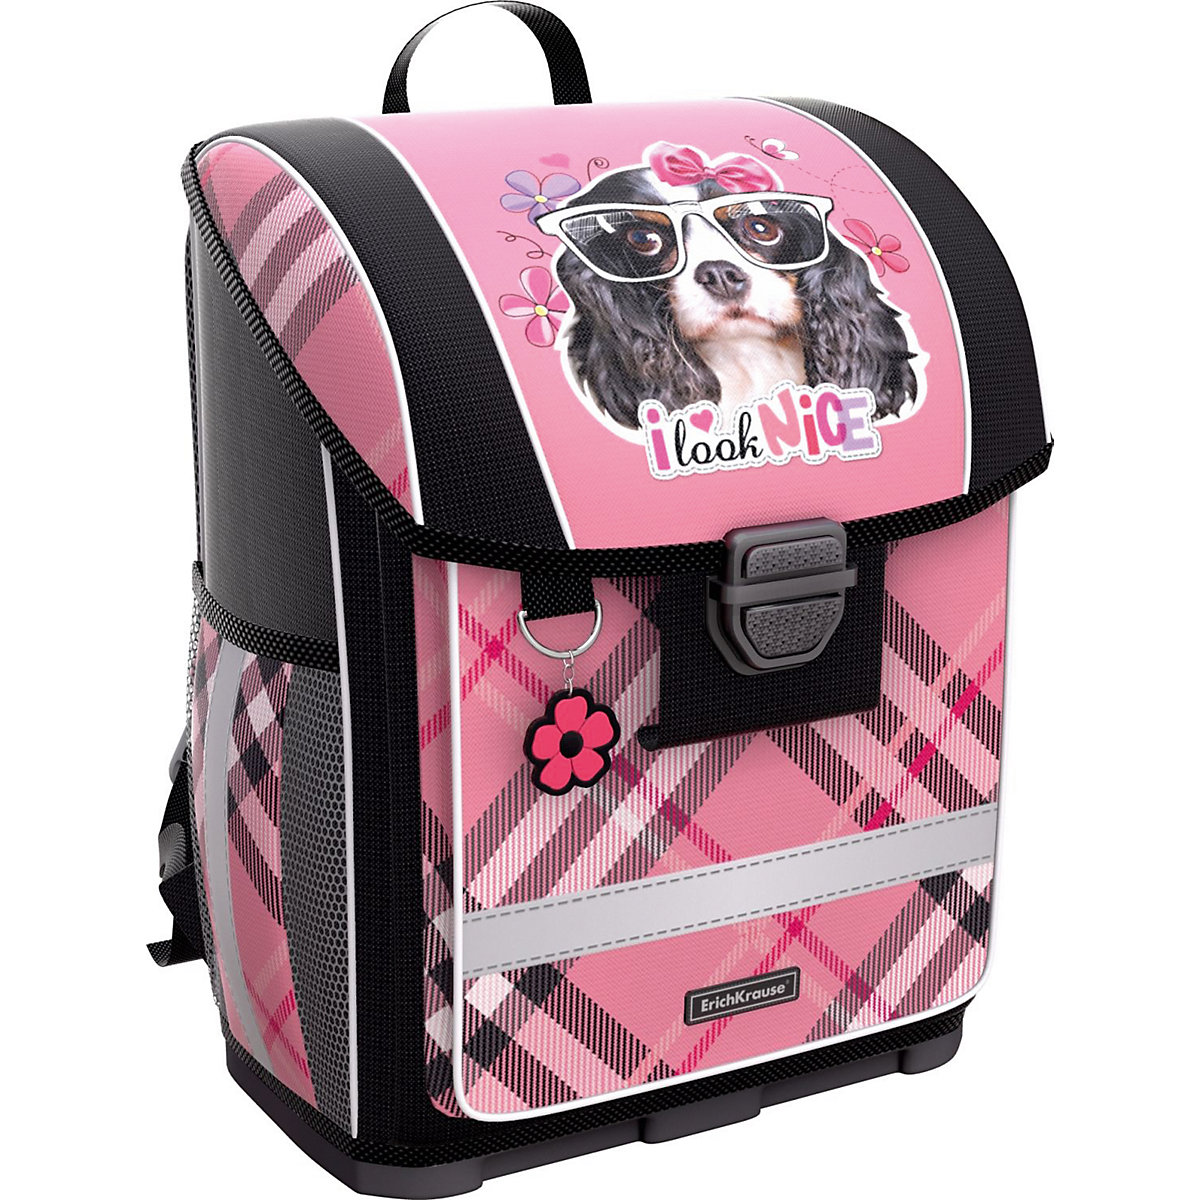 School Bags ERICHKRAUSE 8348514 schoolbag backpack orthopedic bag for boy and girl animals flowers dispalang high quality laptop backpack for men women horse unicorn large school bags for teens casual travel laptop bag rucksack